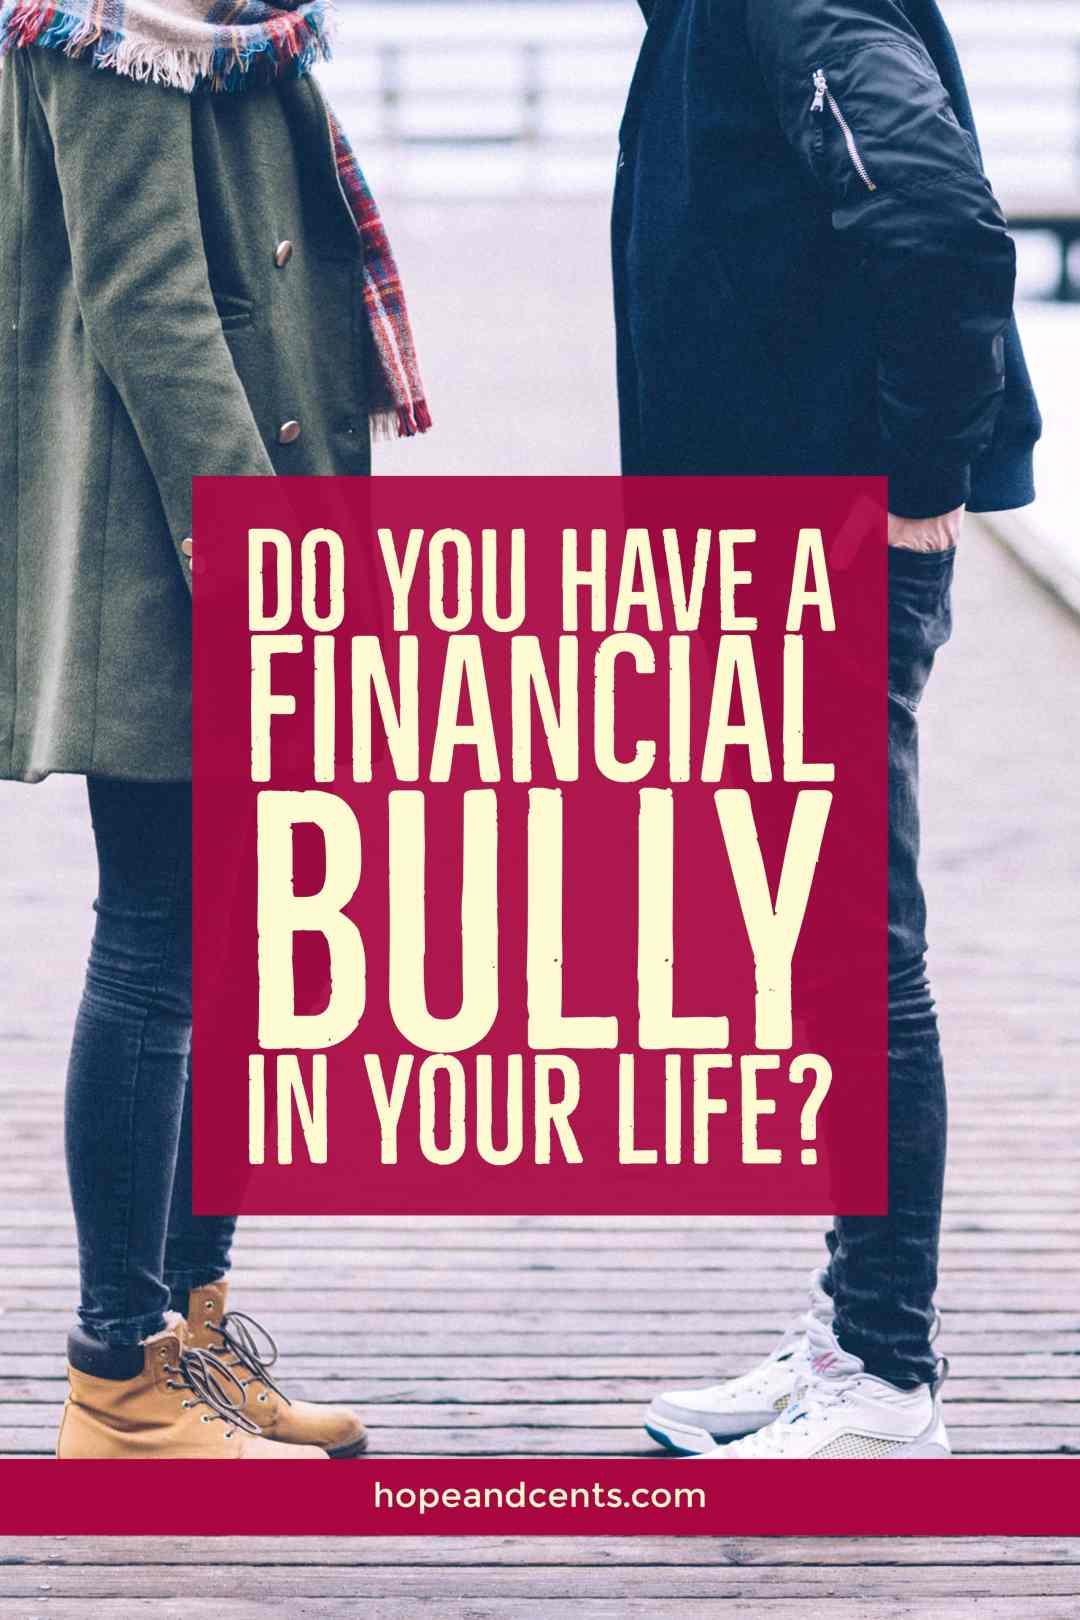 What is a financial bully, and do you have one? You might be surprised to discover that you do. Learn how to identify them, deal with them, and whether or not you are one.